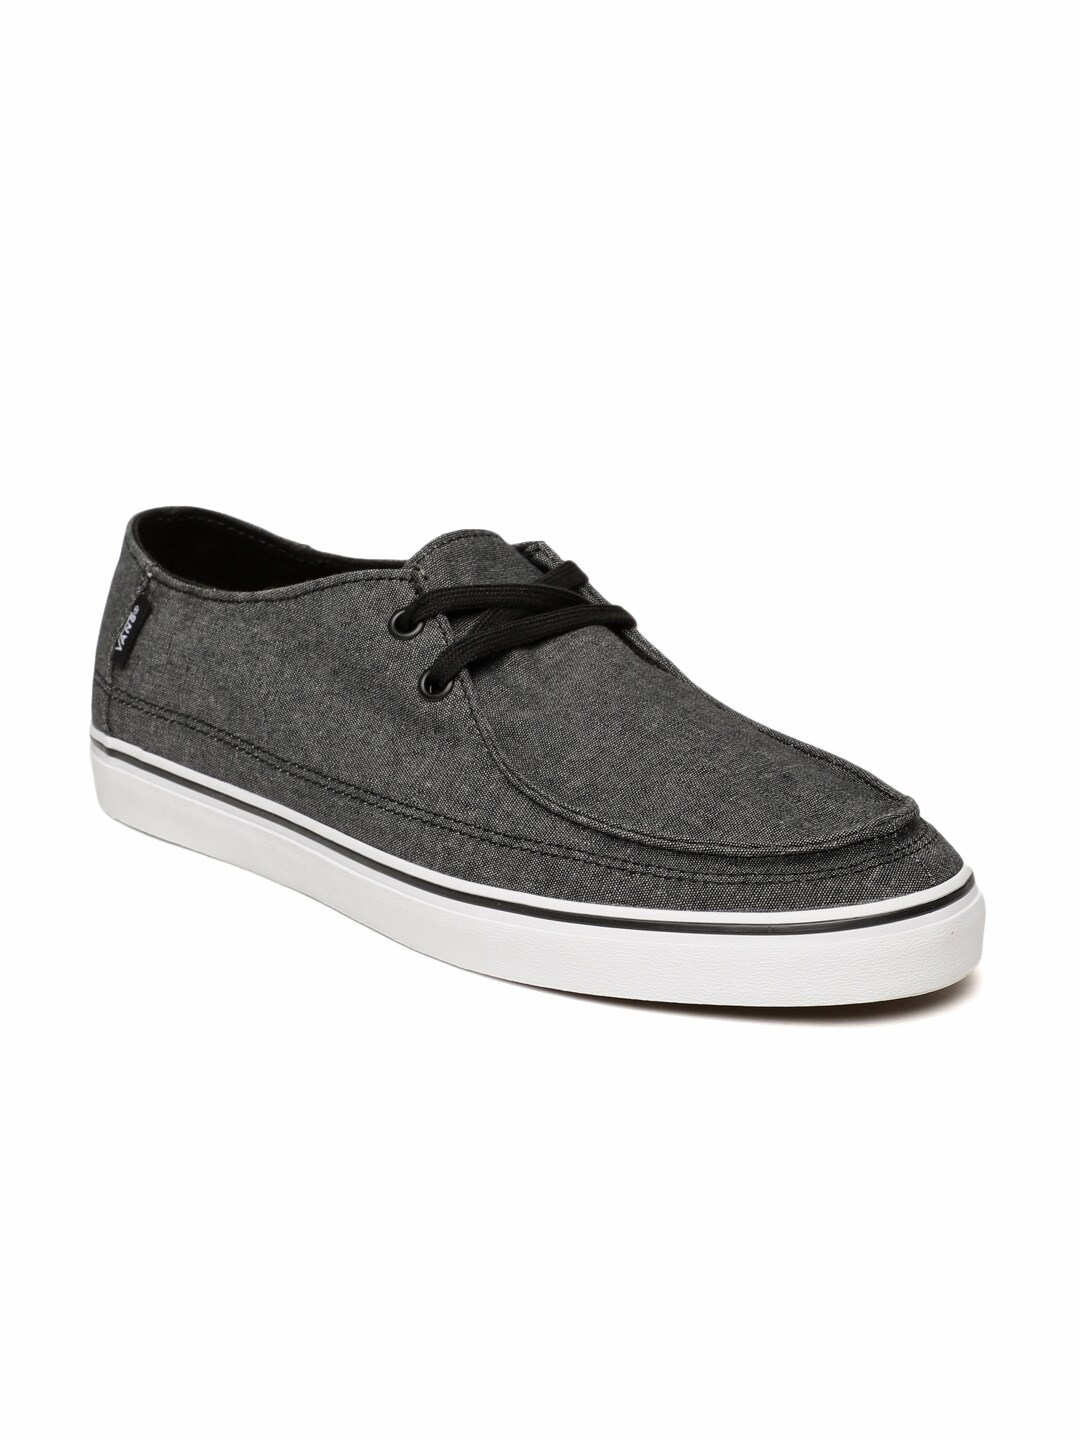 0f25fdae1bca7c Vans Casual Shoes - Buy Vans Casual Shoes Online in India